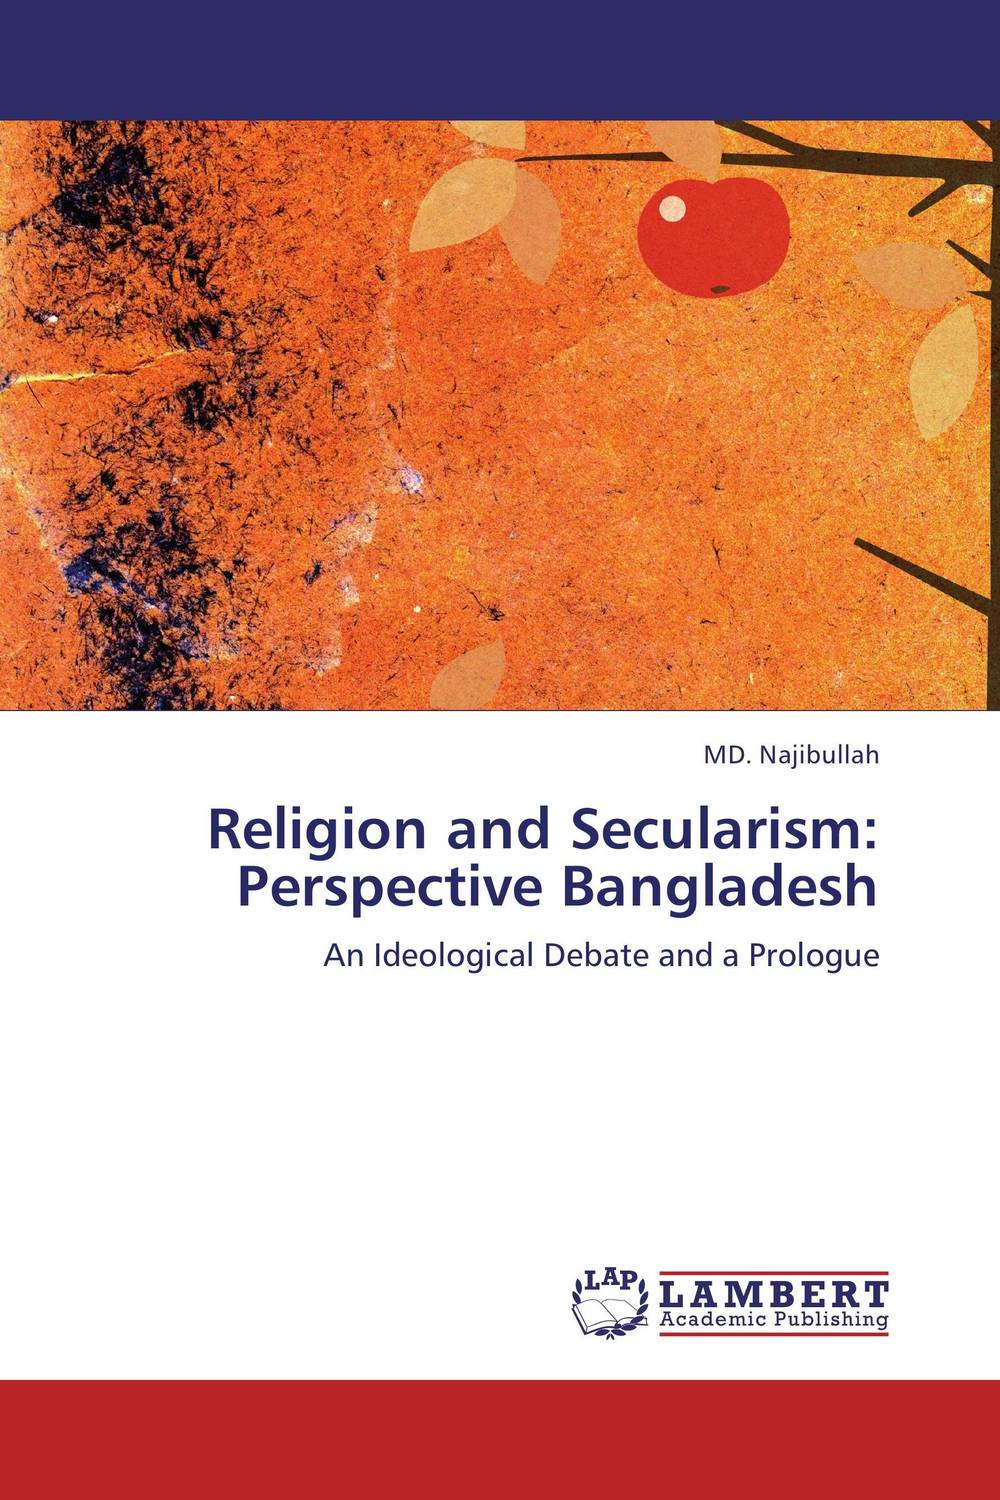 Religion and Secularism: Perspective Bangladesh rich is a religion